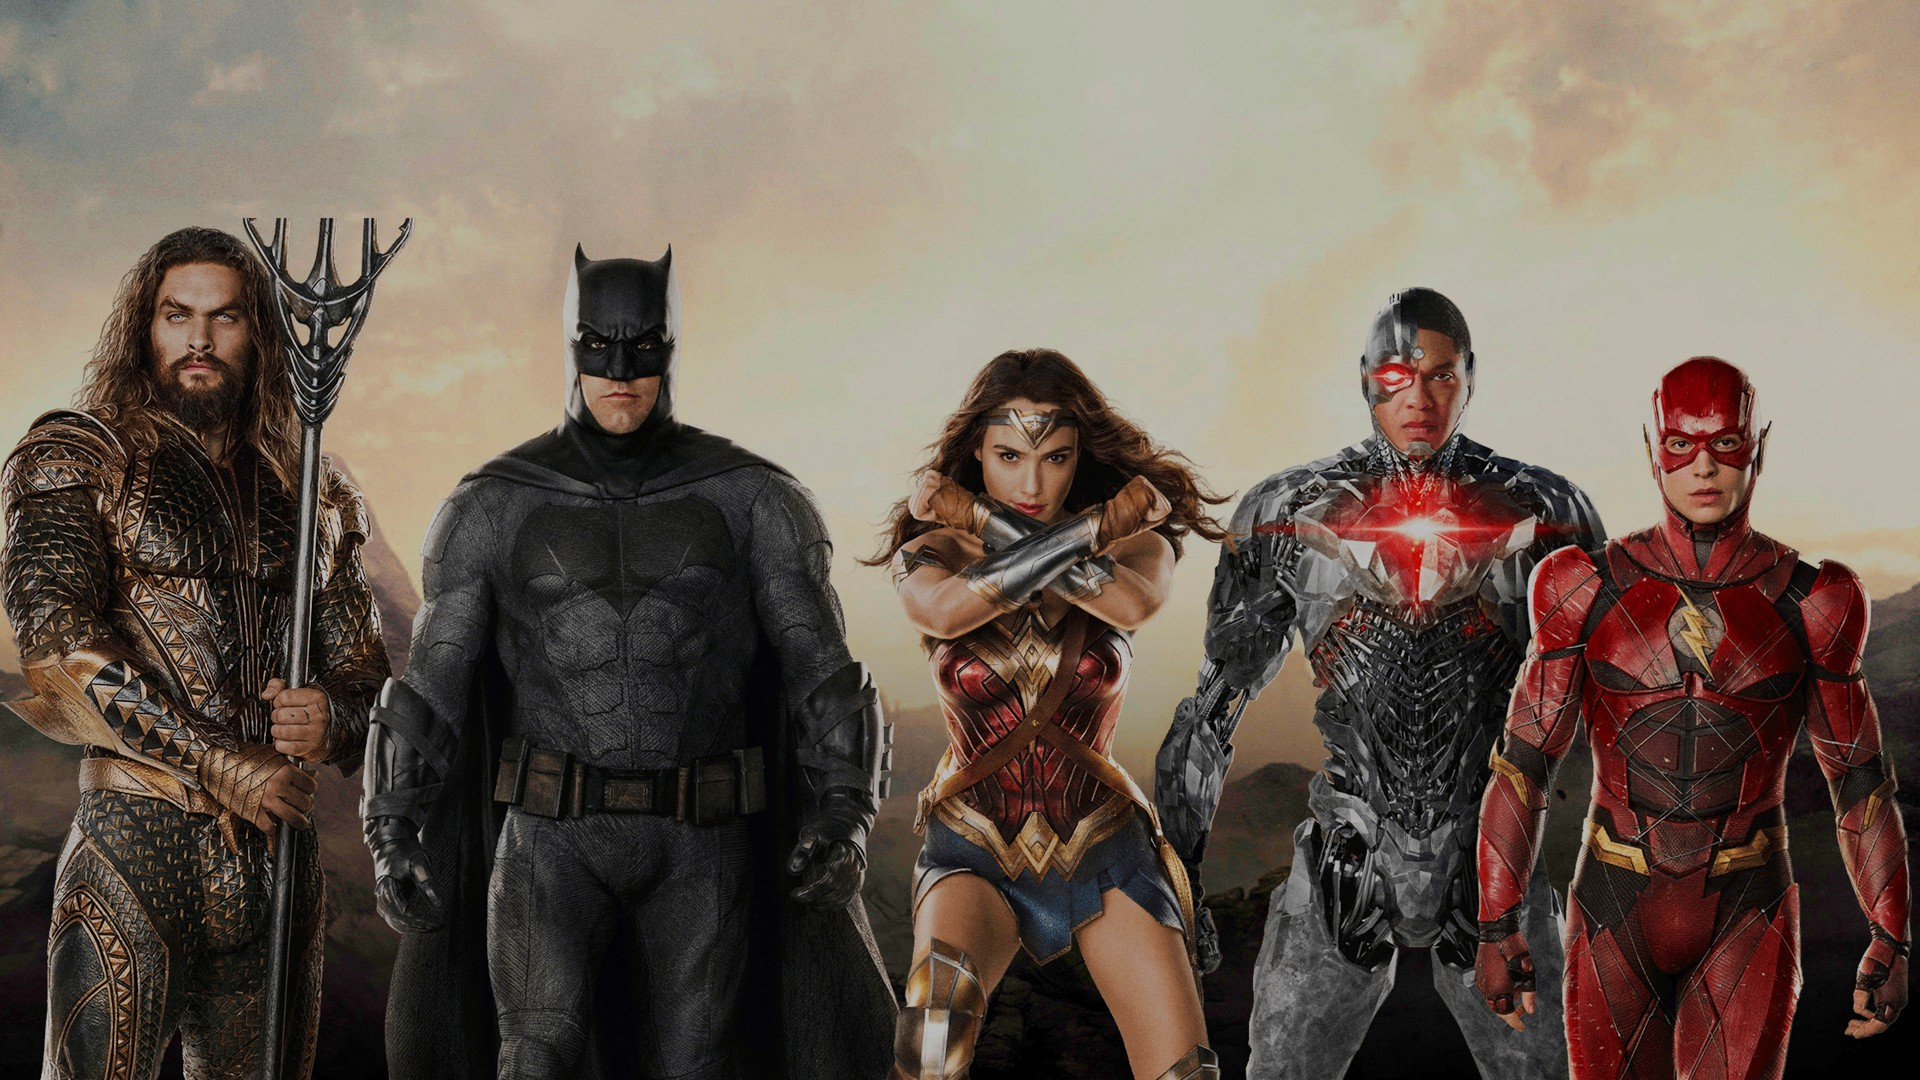 1920x1080 Justice League 2017 HD Wallpapers